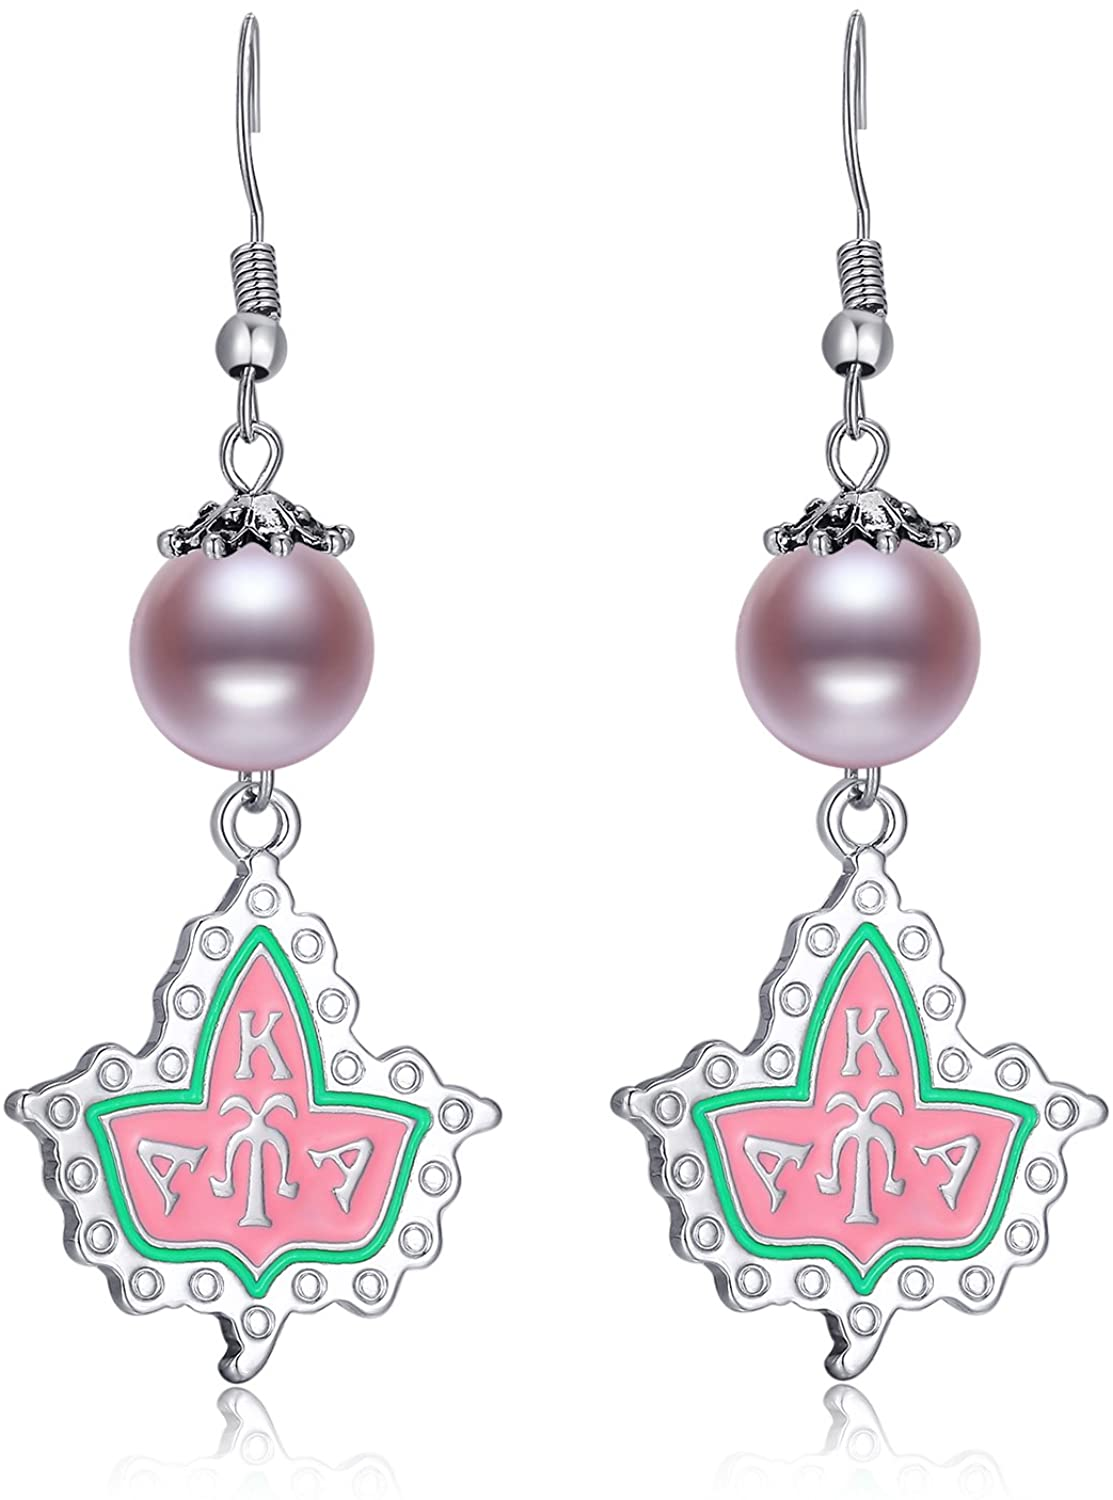 Lanqueen AKA Sorority Gifts Alpha Kappa Alpha Paraphernalia Vintage Pearl Crystal Necklace Earrings for Women Girls